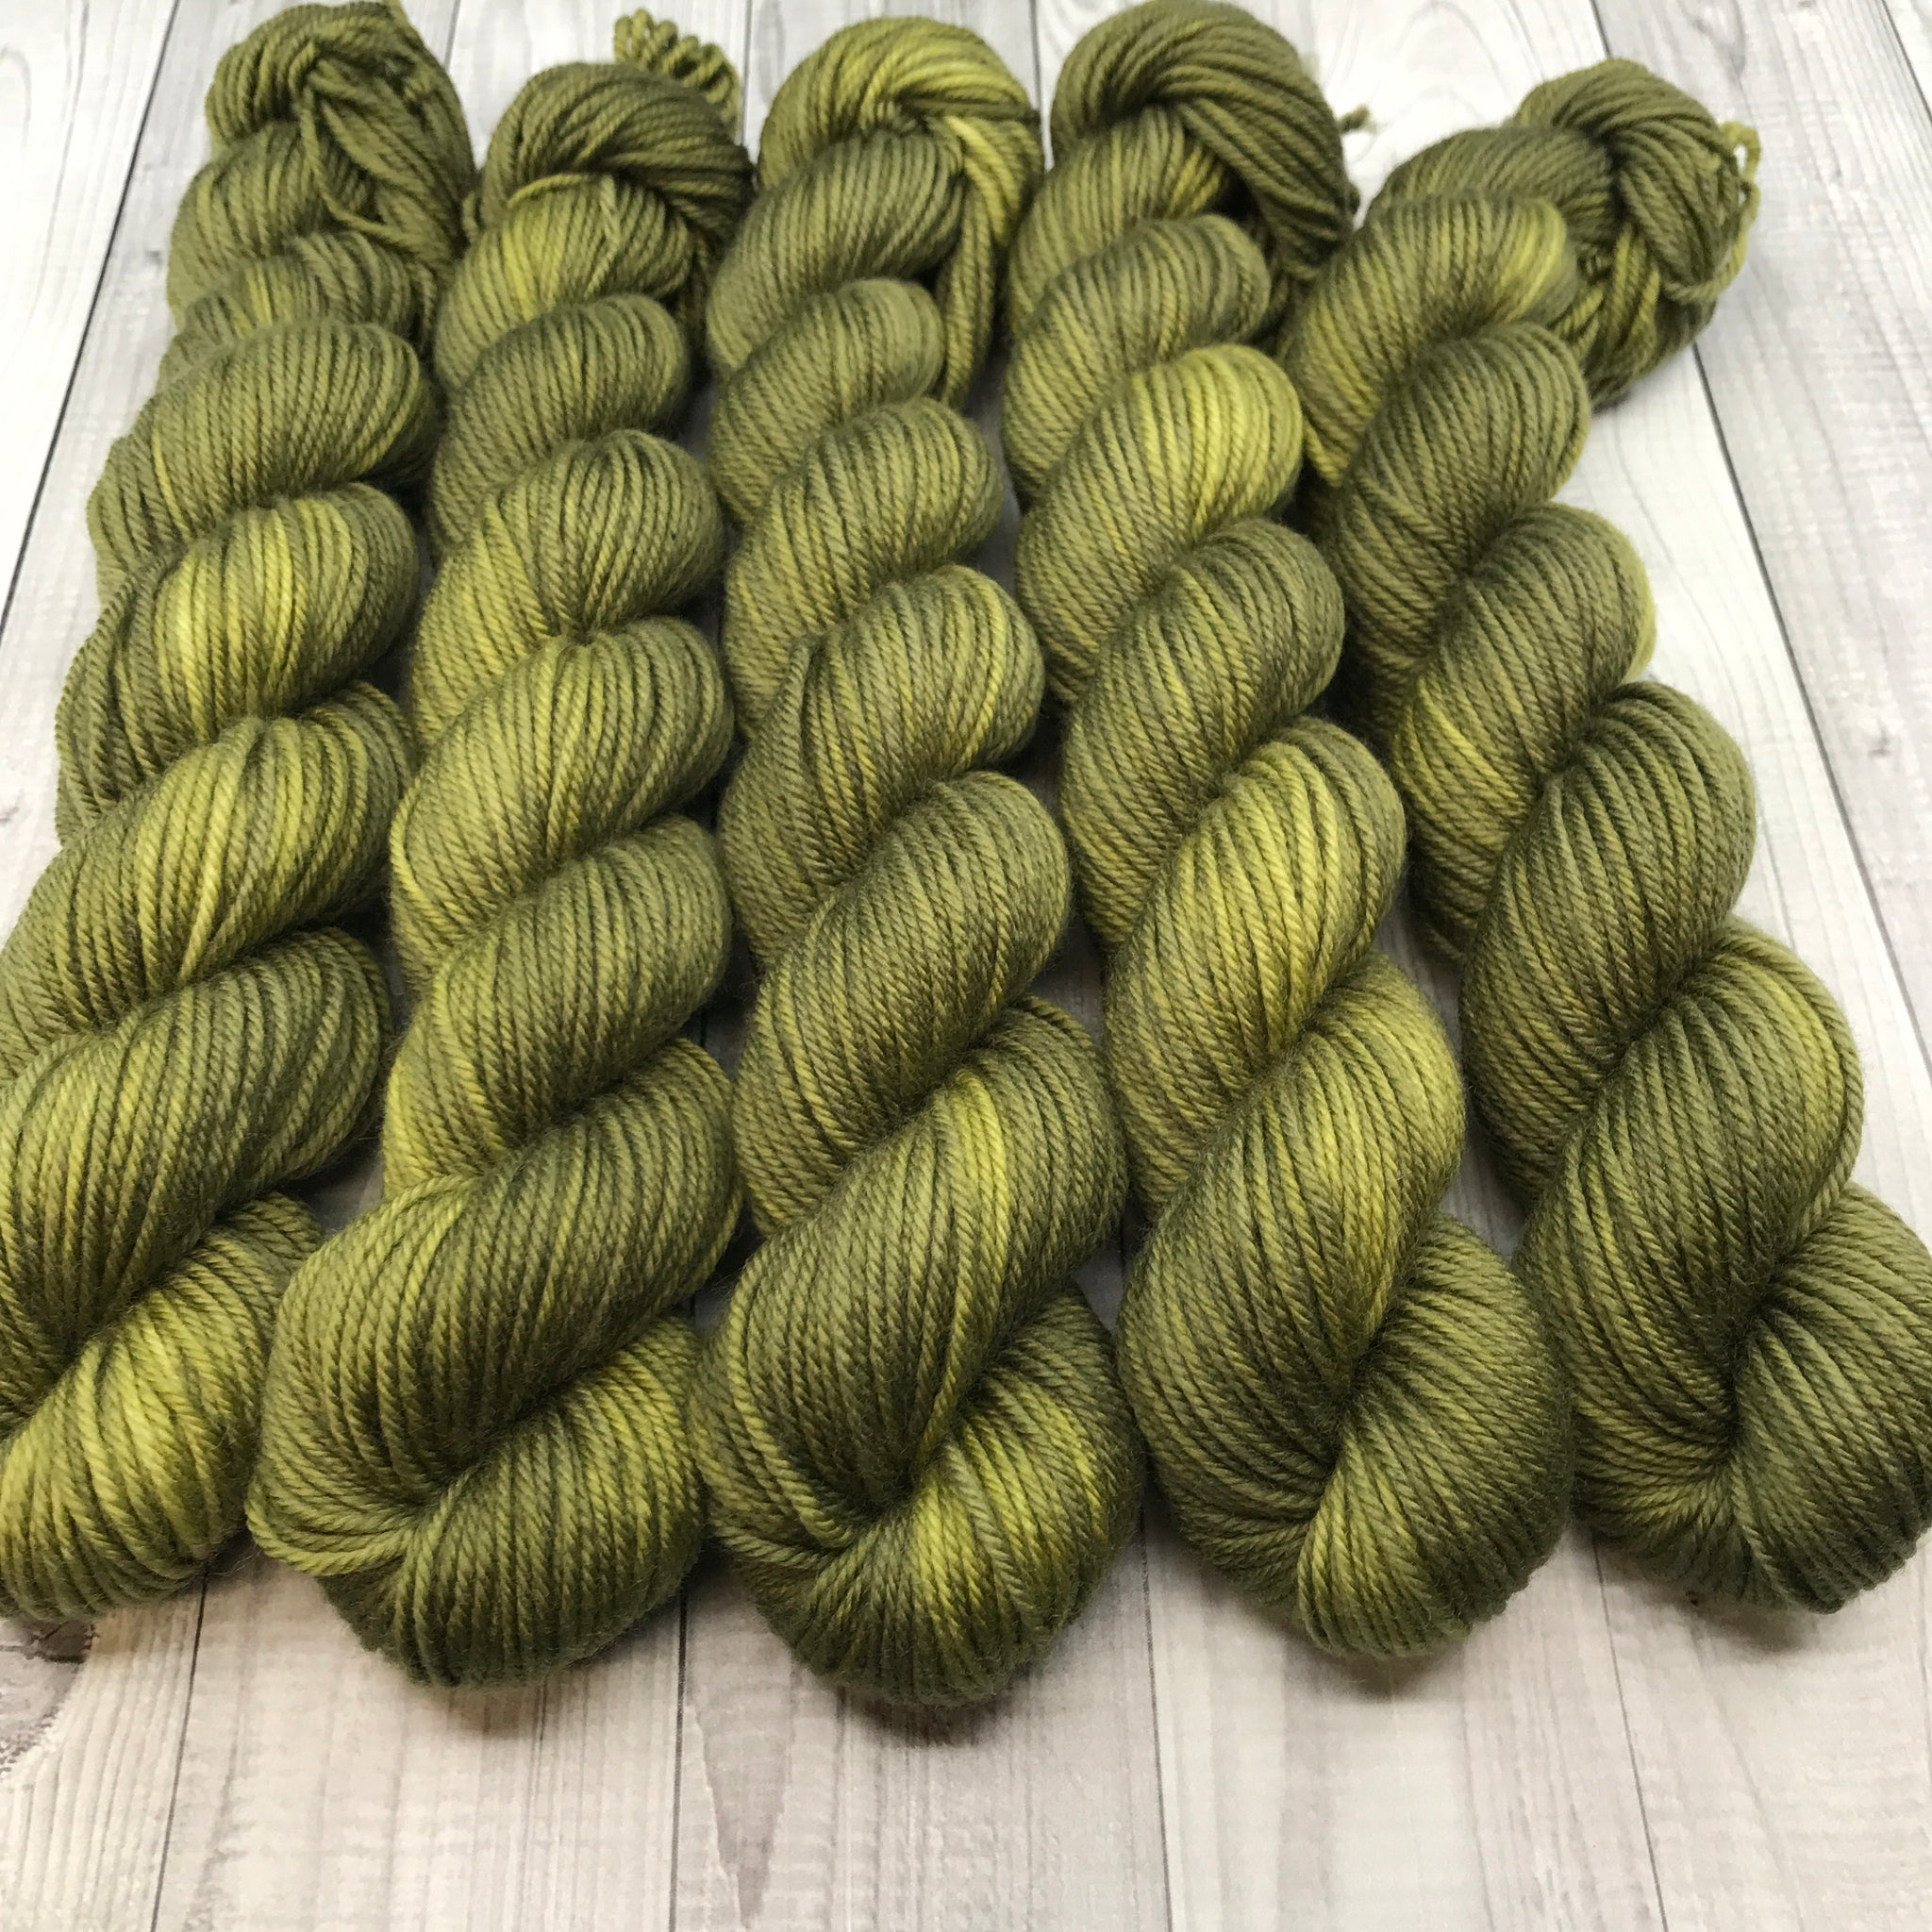 Trevor Morgan DK - Mini Skein- Burnt Grass